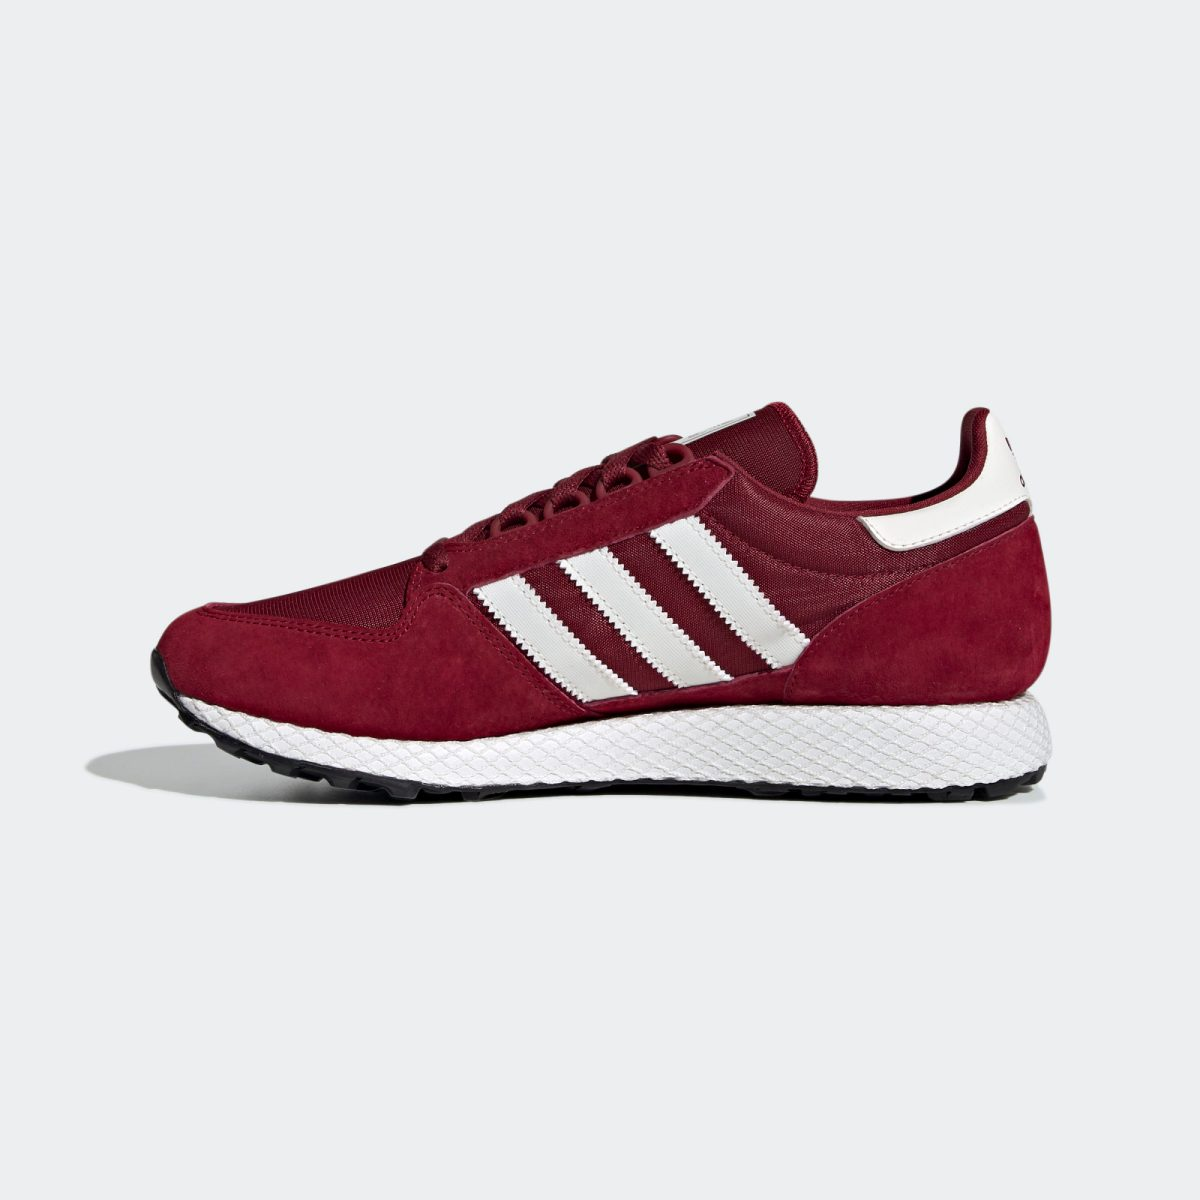 Forest_Grove_Shoes_Burgundy_CG5674_06_standard